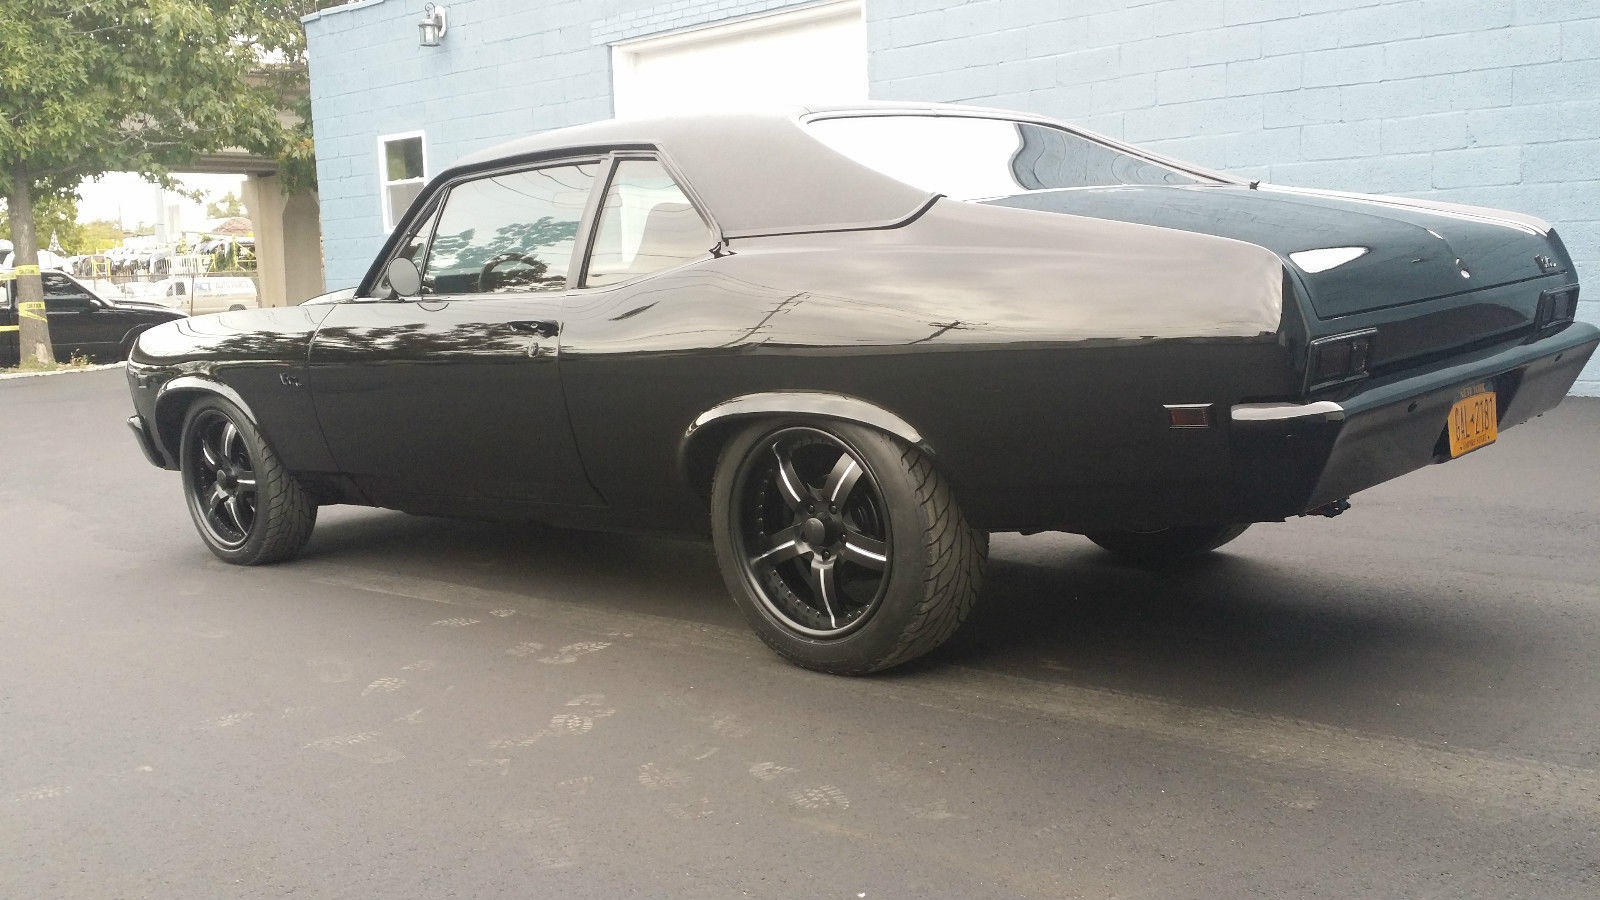 All Chevy black chevy nova : A 1969 Chevy Nova with Murdered out Pro Touring Treatment